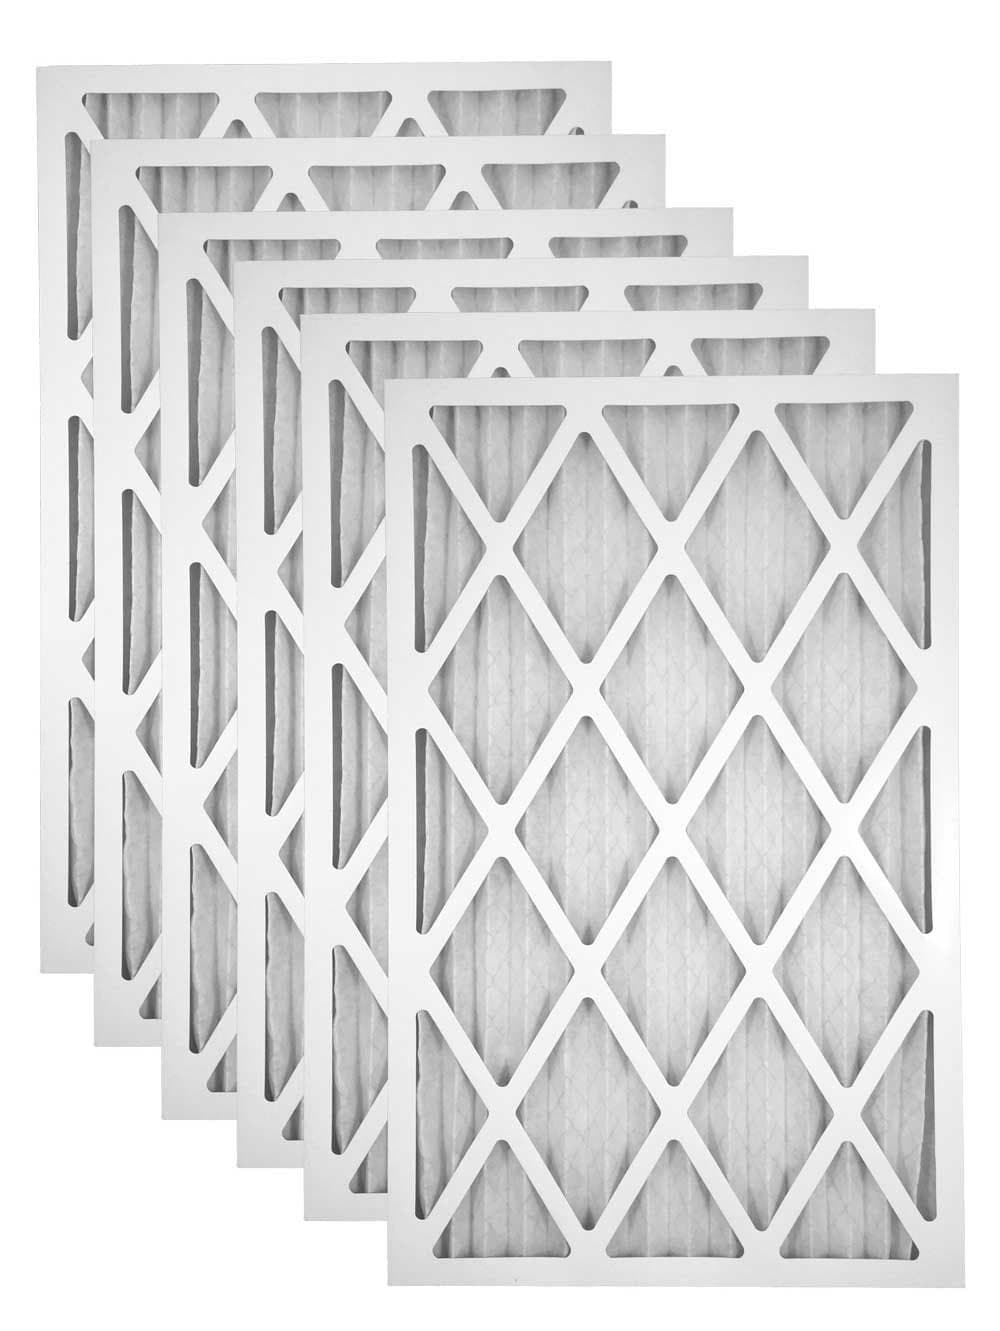 12x18x1 Merv 8 AC Furnace Filter - Case of 6